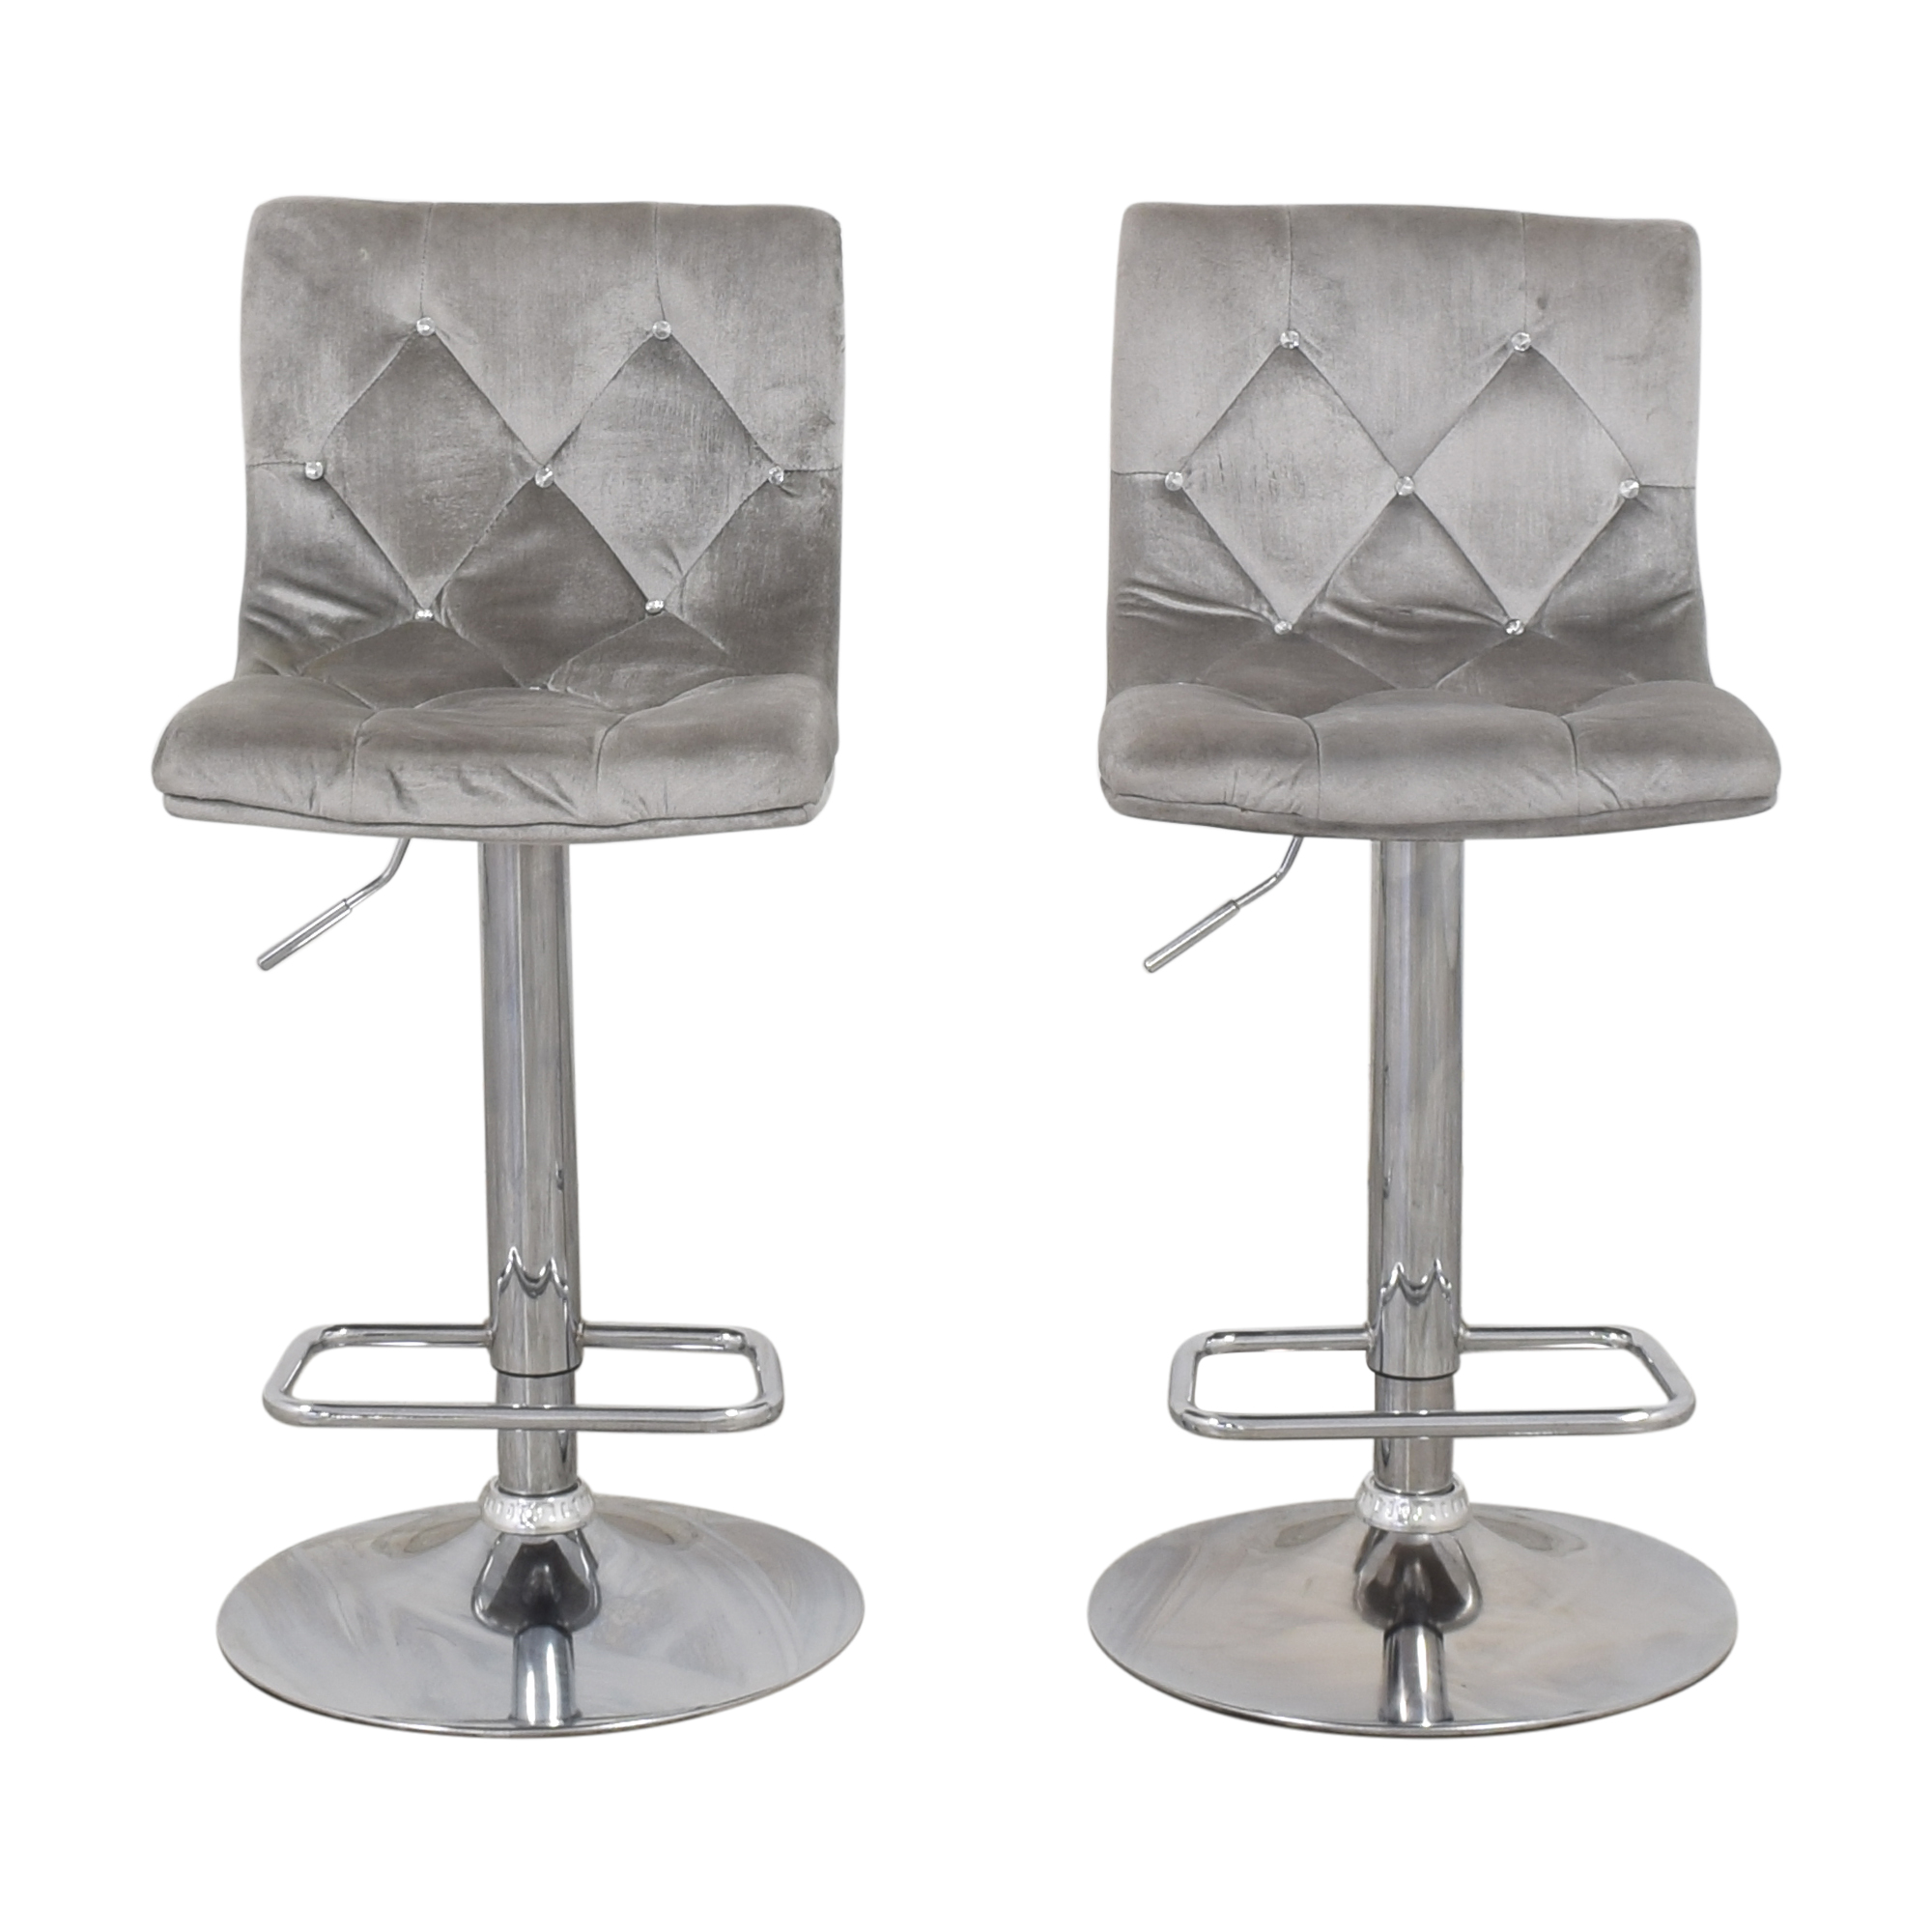 buy  Diamond-Tufted Swivel Bar Stools online